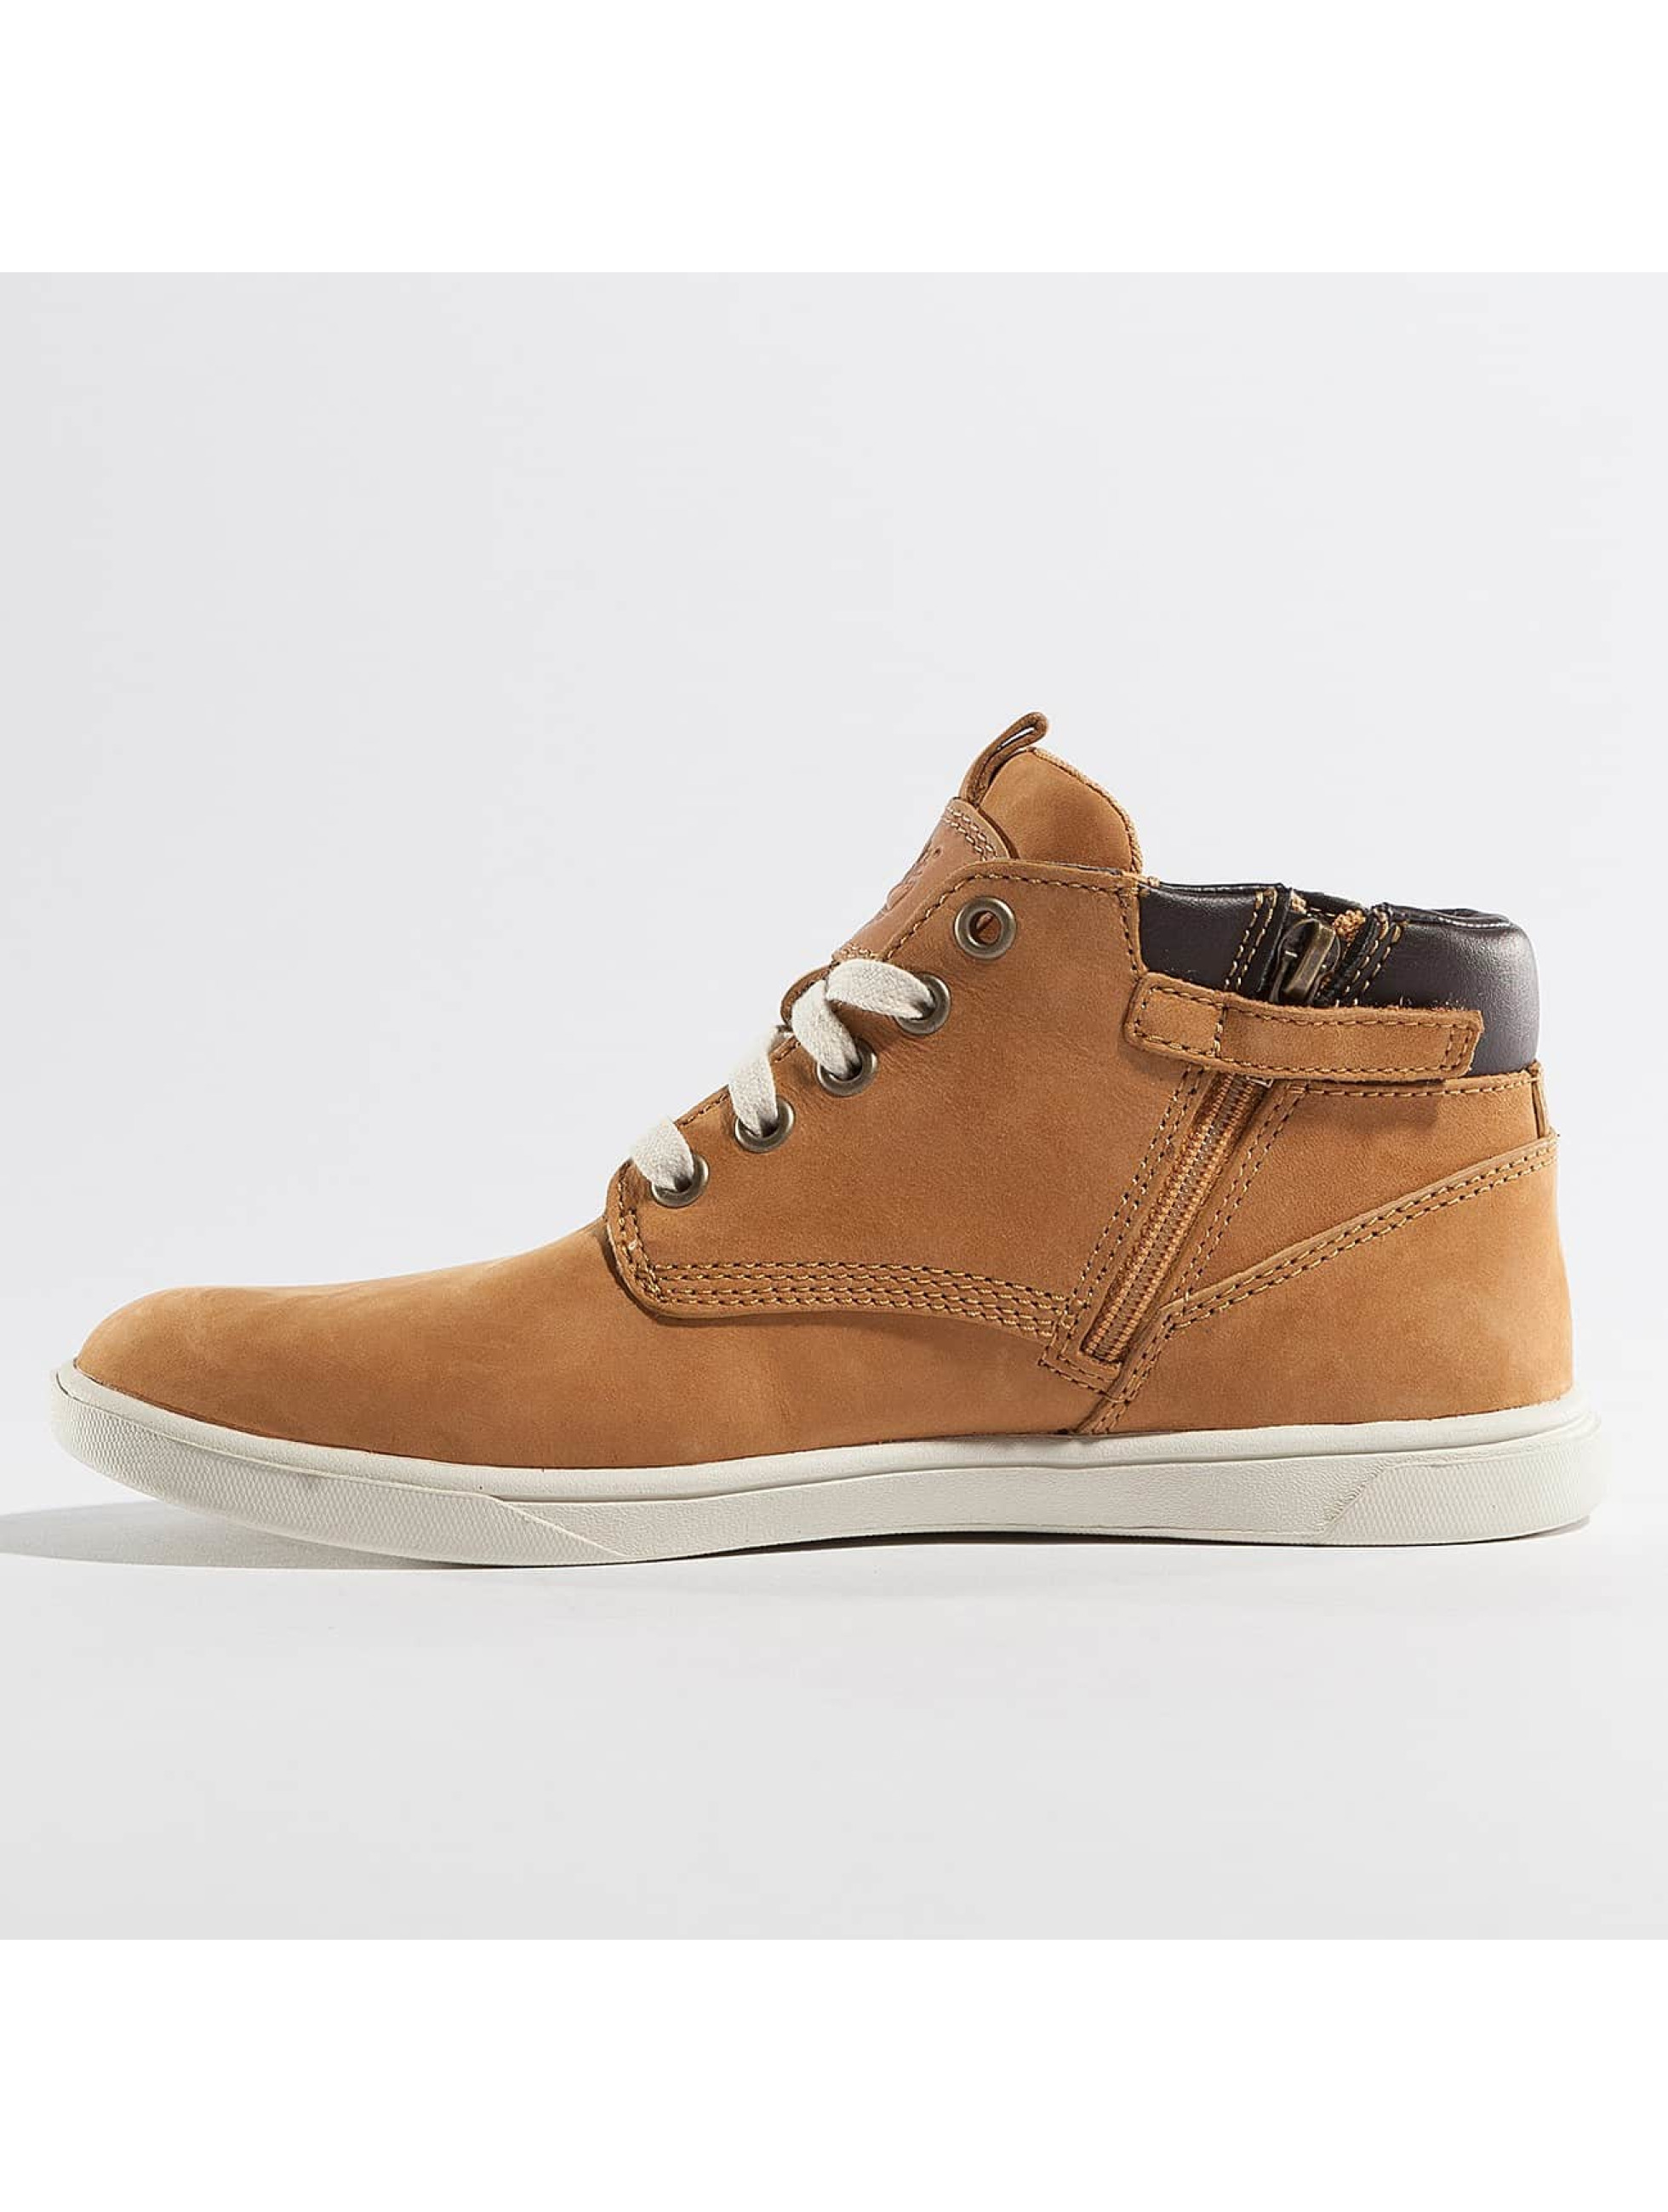 timberland damen sneaker earthkeepers groveton leather chukka in beige 186467. Black Bedroom Furniture Sets. Home Design Ideas